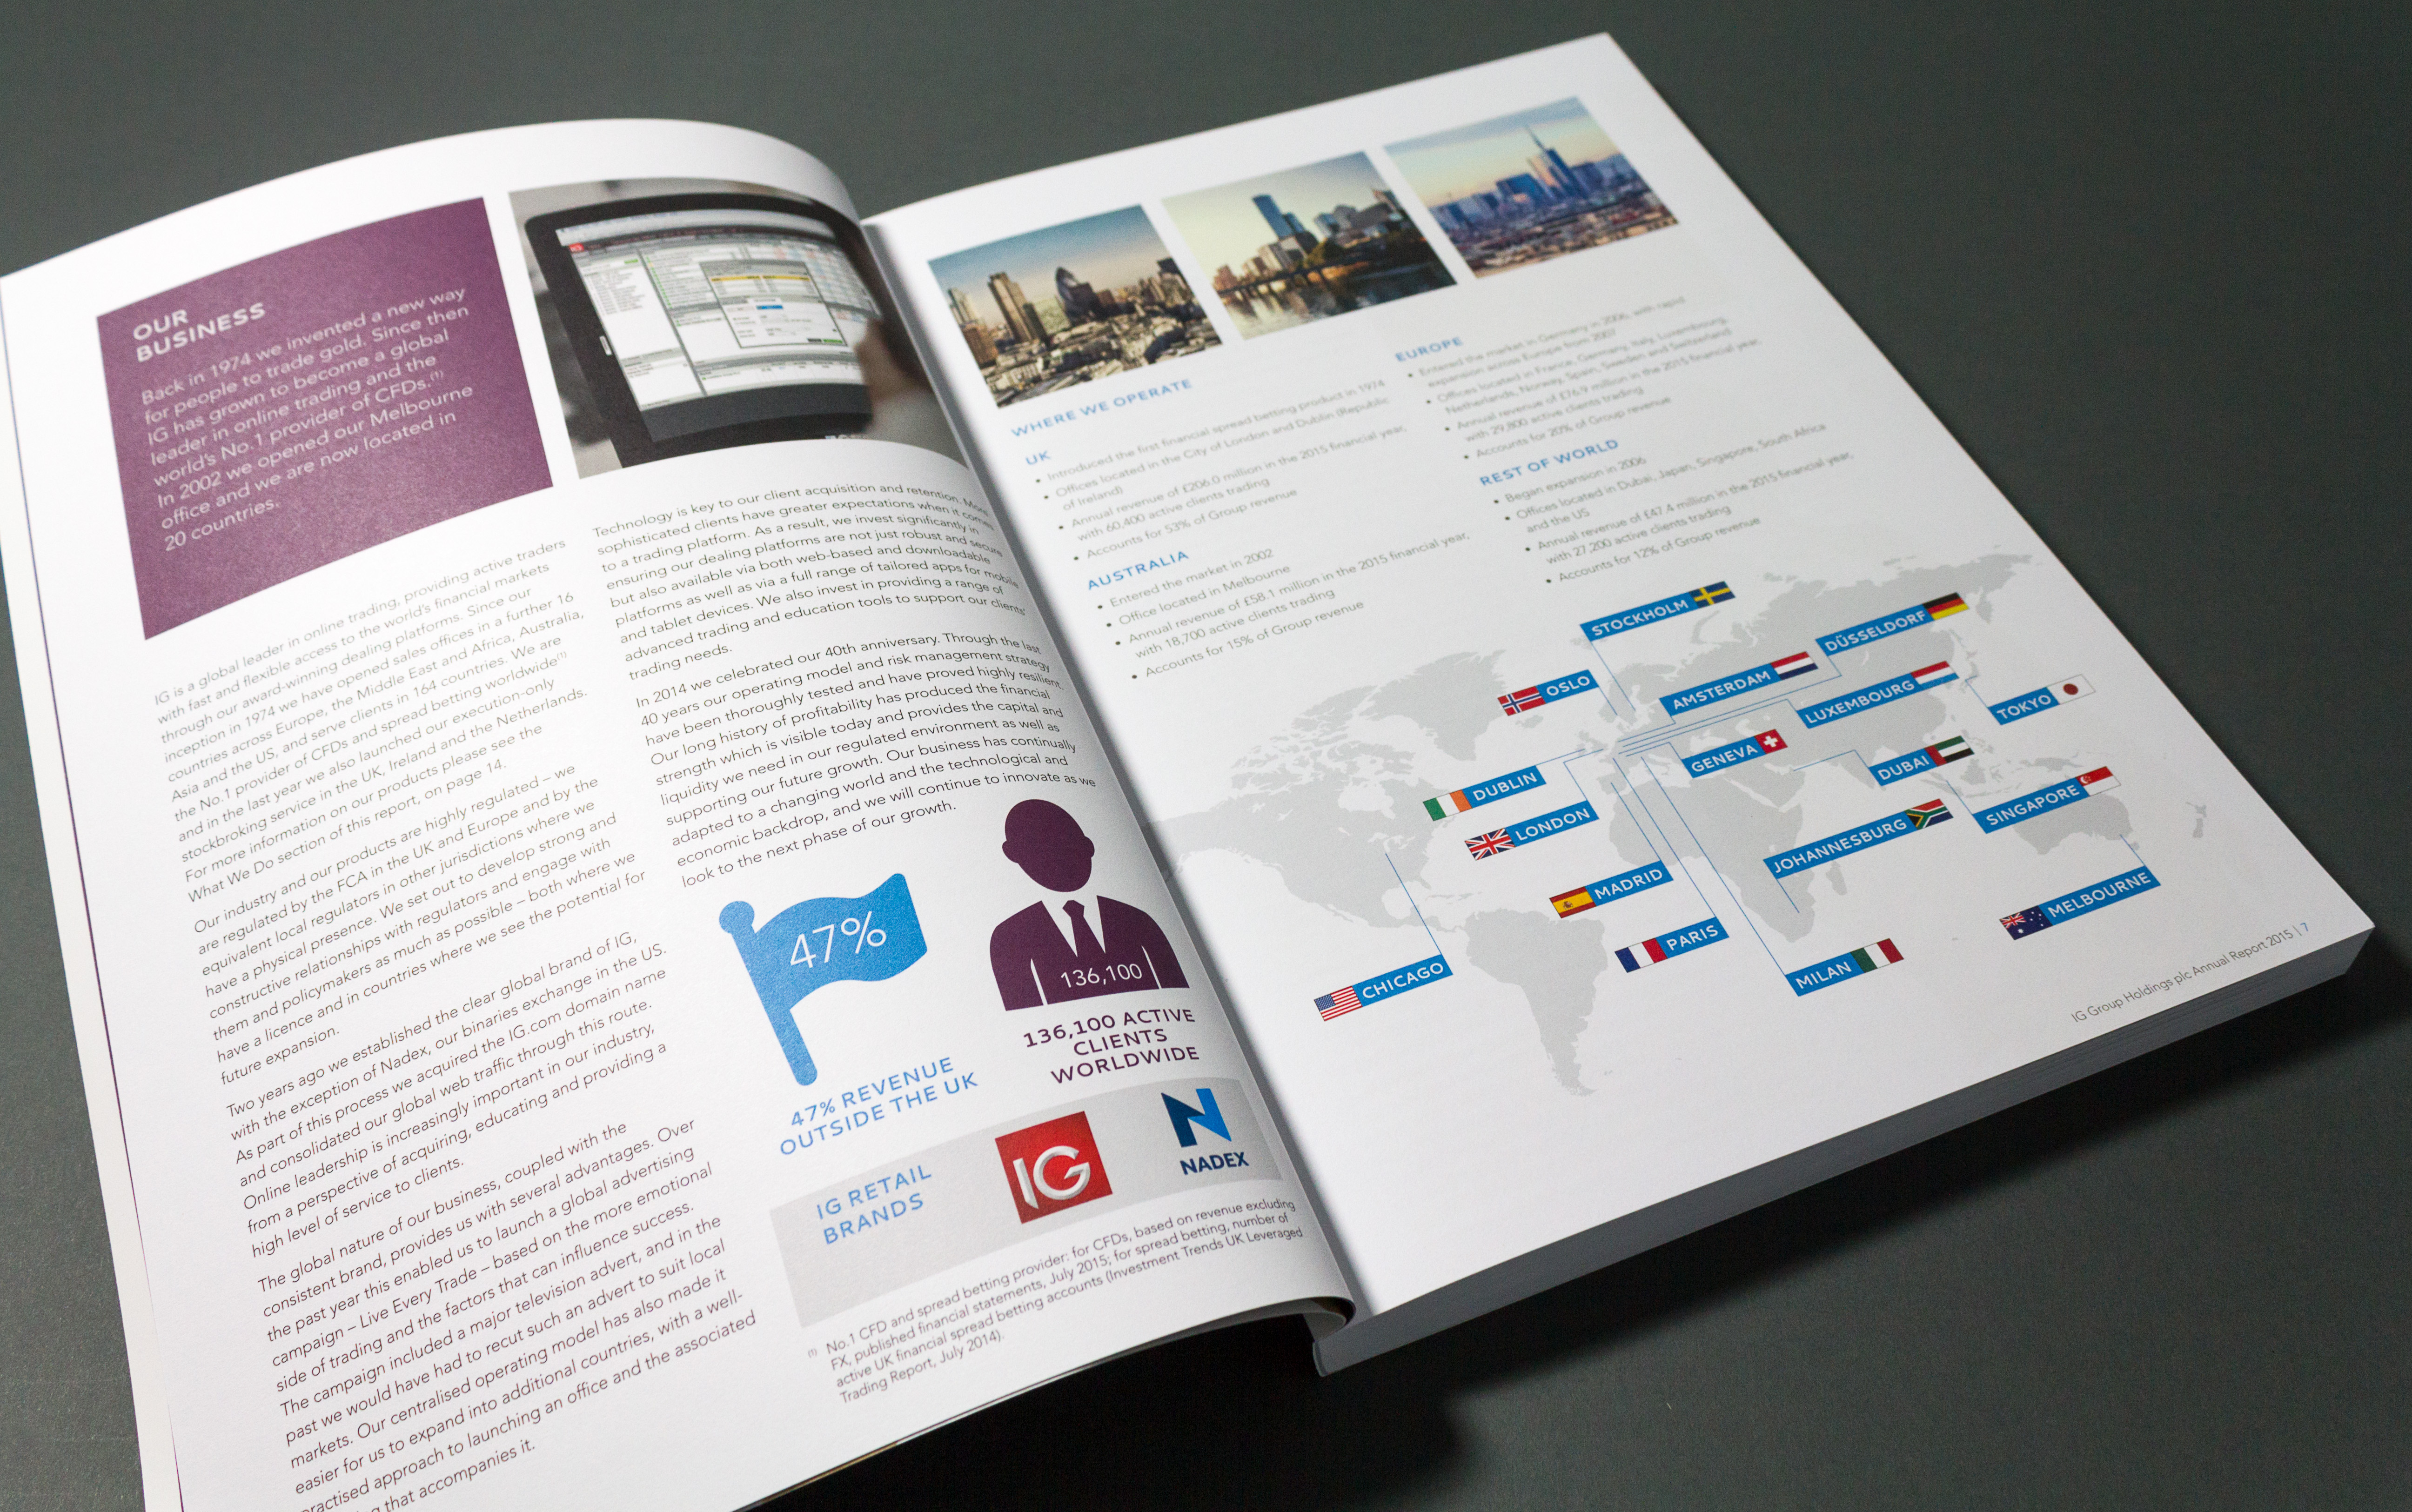 Short case studies in marketing communications  Beiersdorf Annual Report     Case study on Behance   DESIGN   Editorial   Pinterest   Annual Reports  Corporate Communication and Skin care